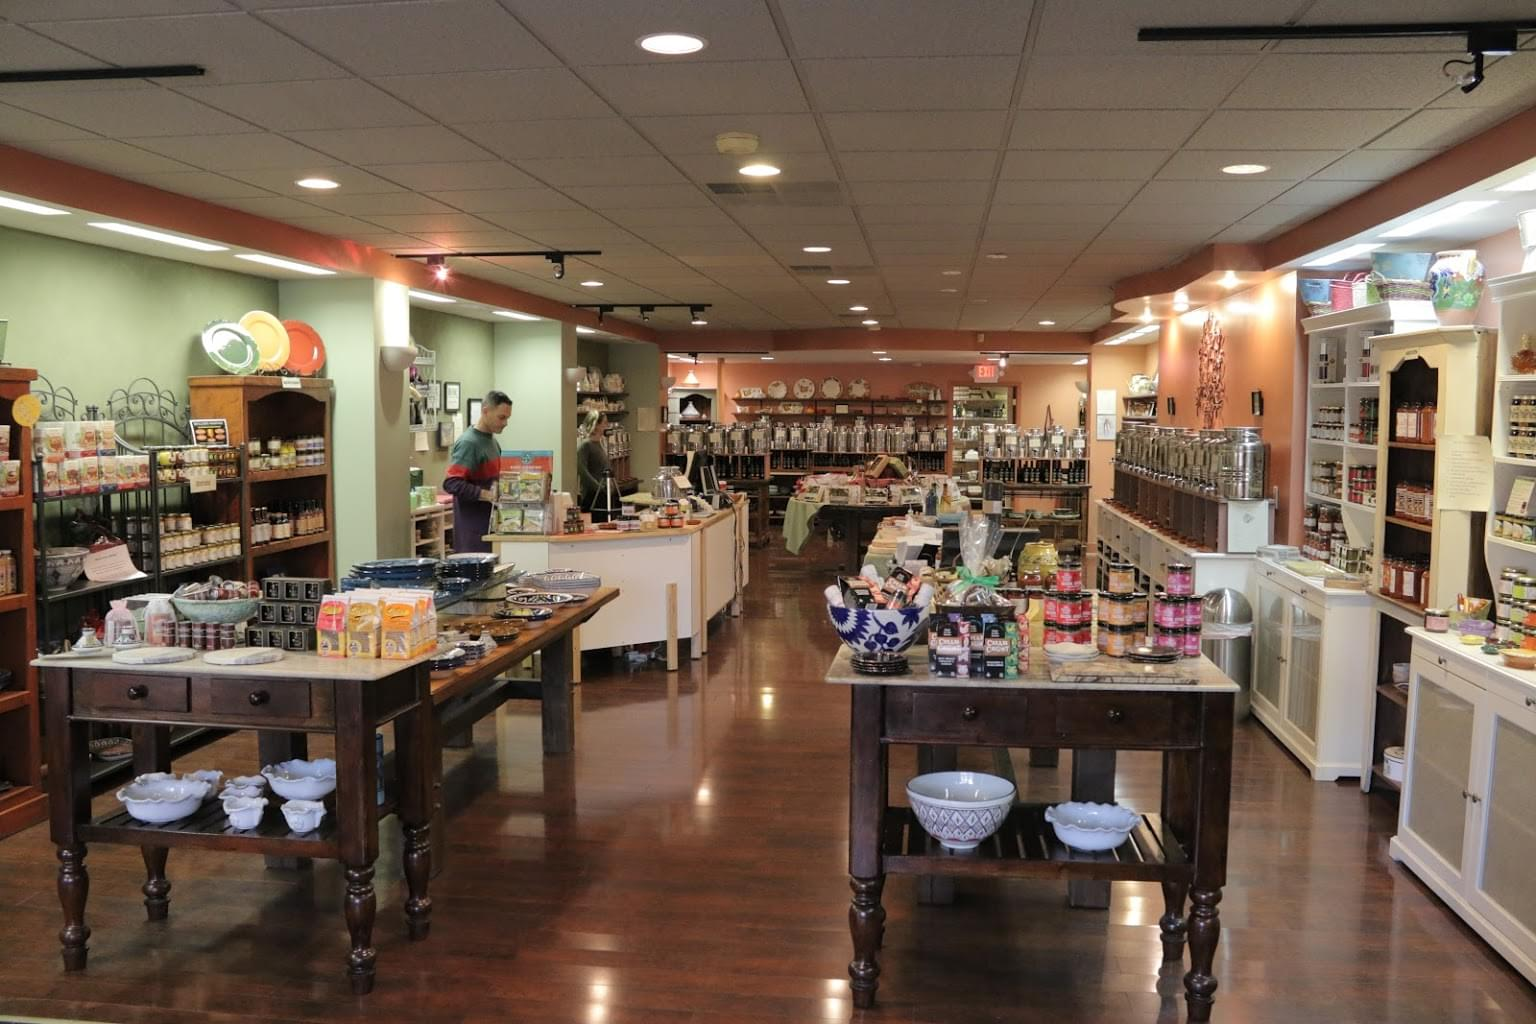 A Taste of Olive, Haddonfield NJ – See-Inside Health Food Store